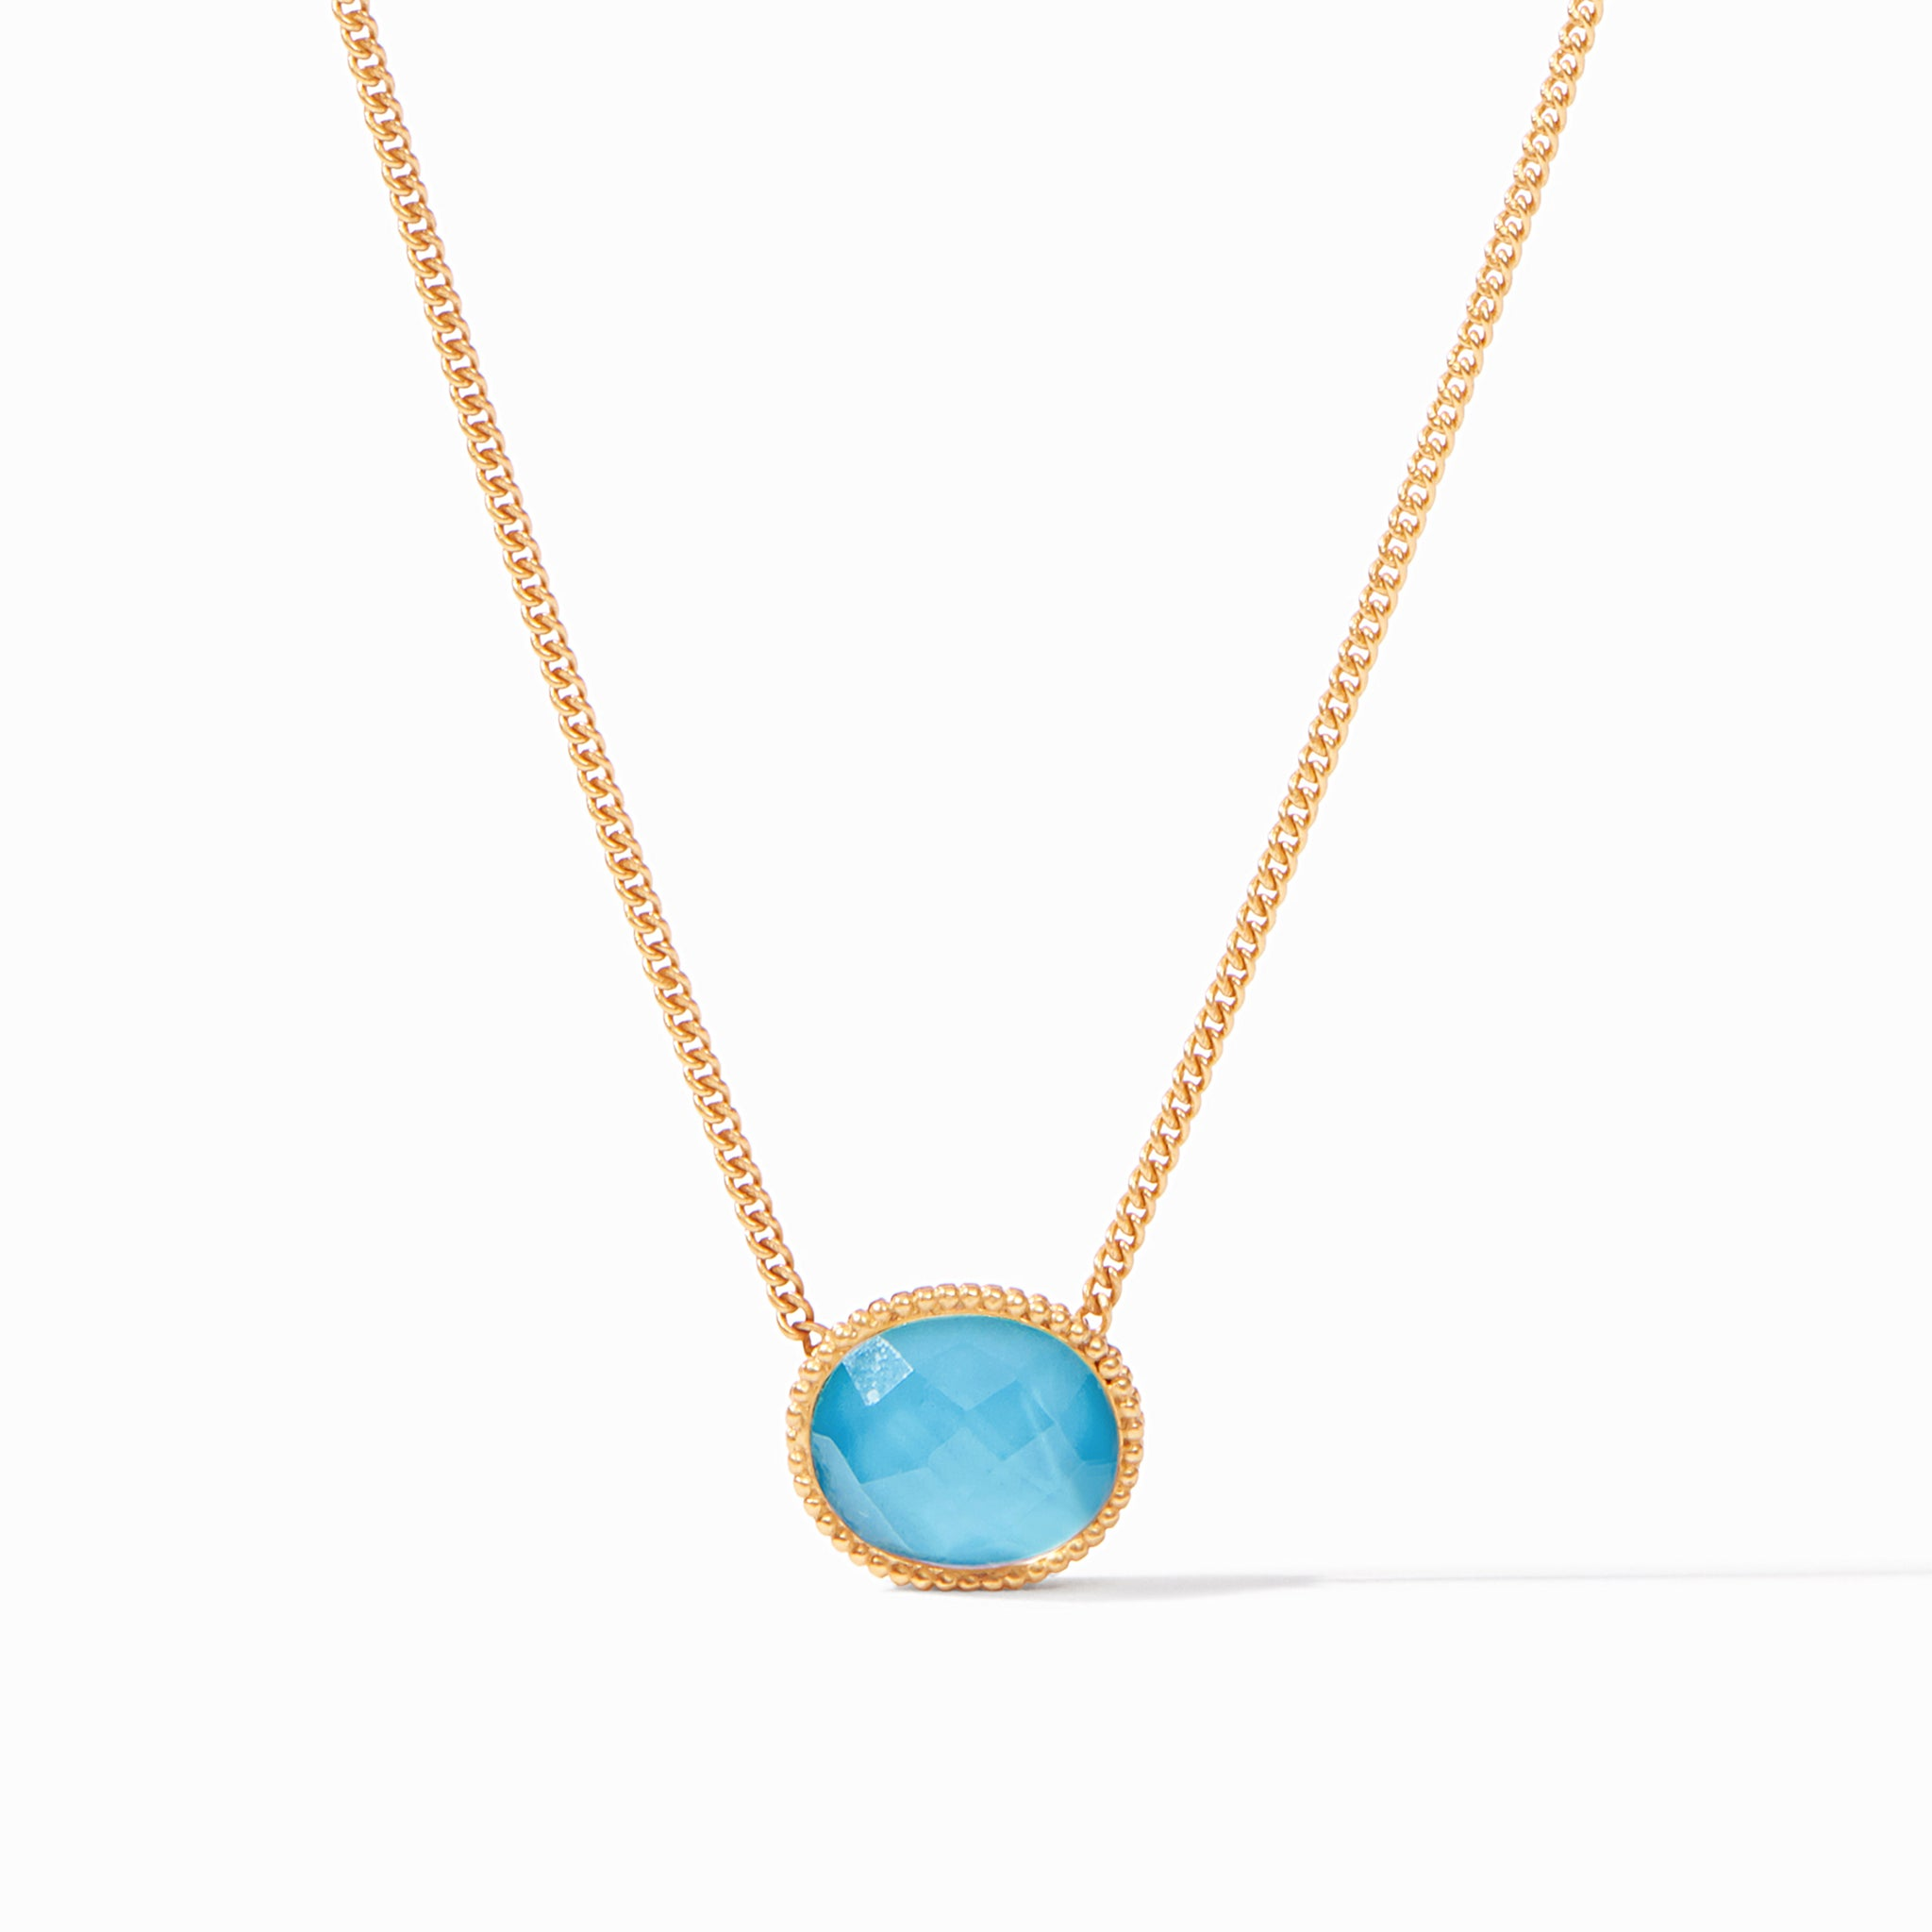 Iridescent Pacific Blue, New Spring Jewels, just add delicates, into the blue, gifts